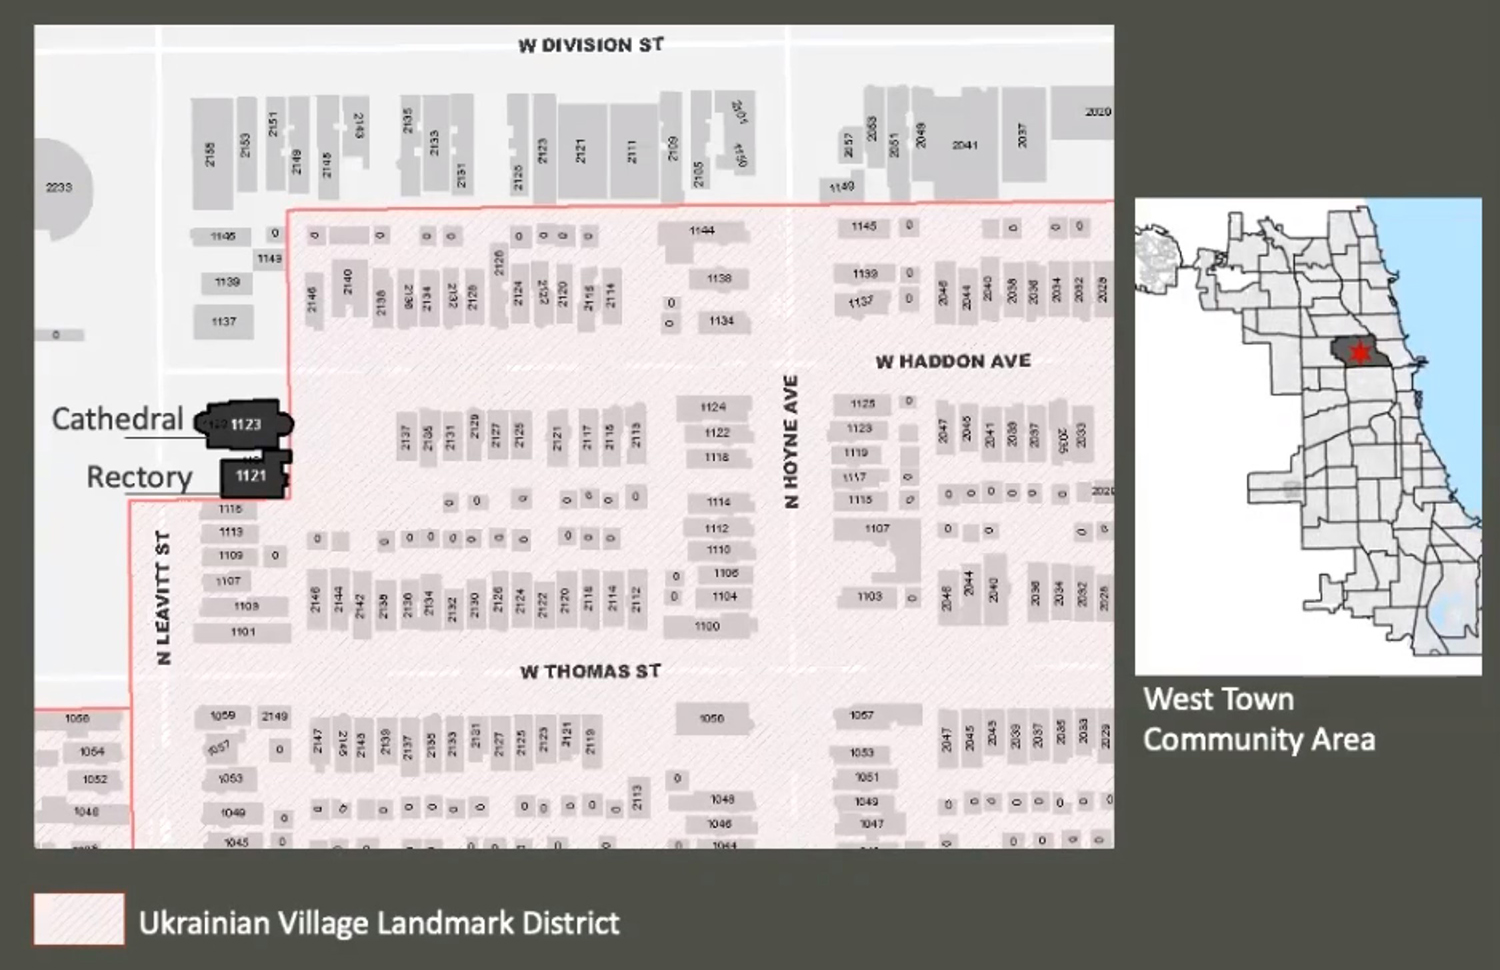 Site Context Map for Holy Trinity Orthodox Cathedral and Rectory. Images by Landmarks Commission